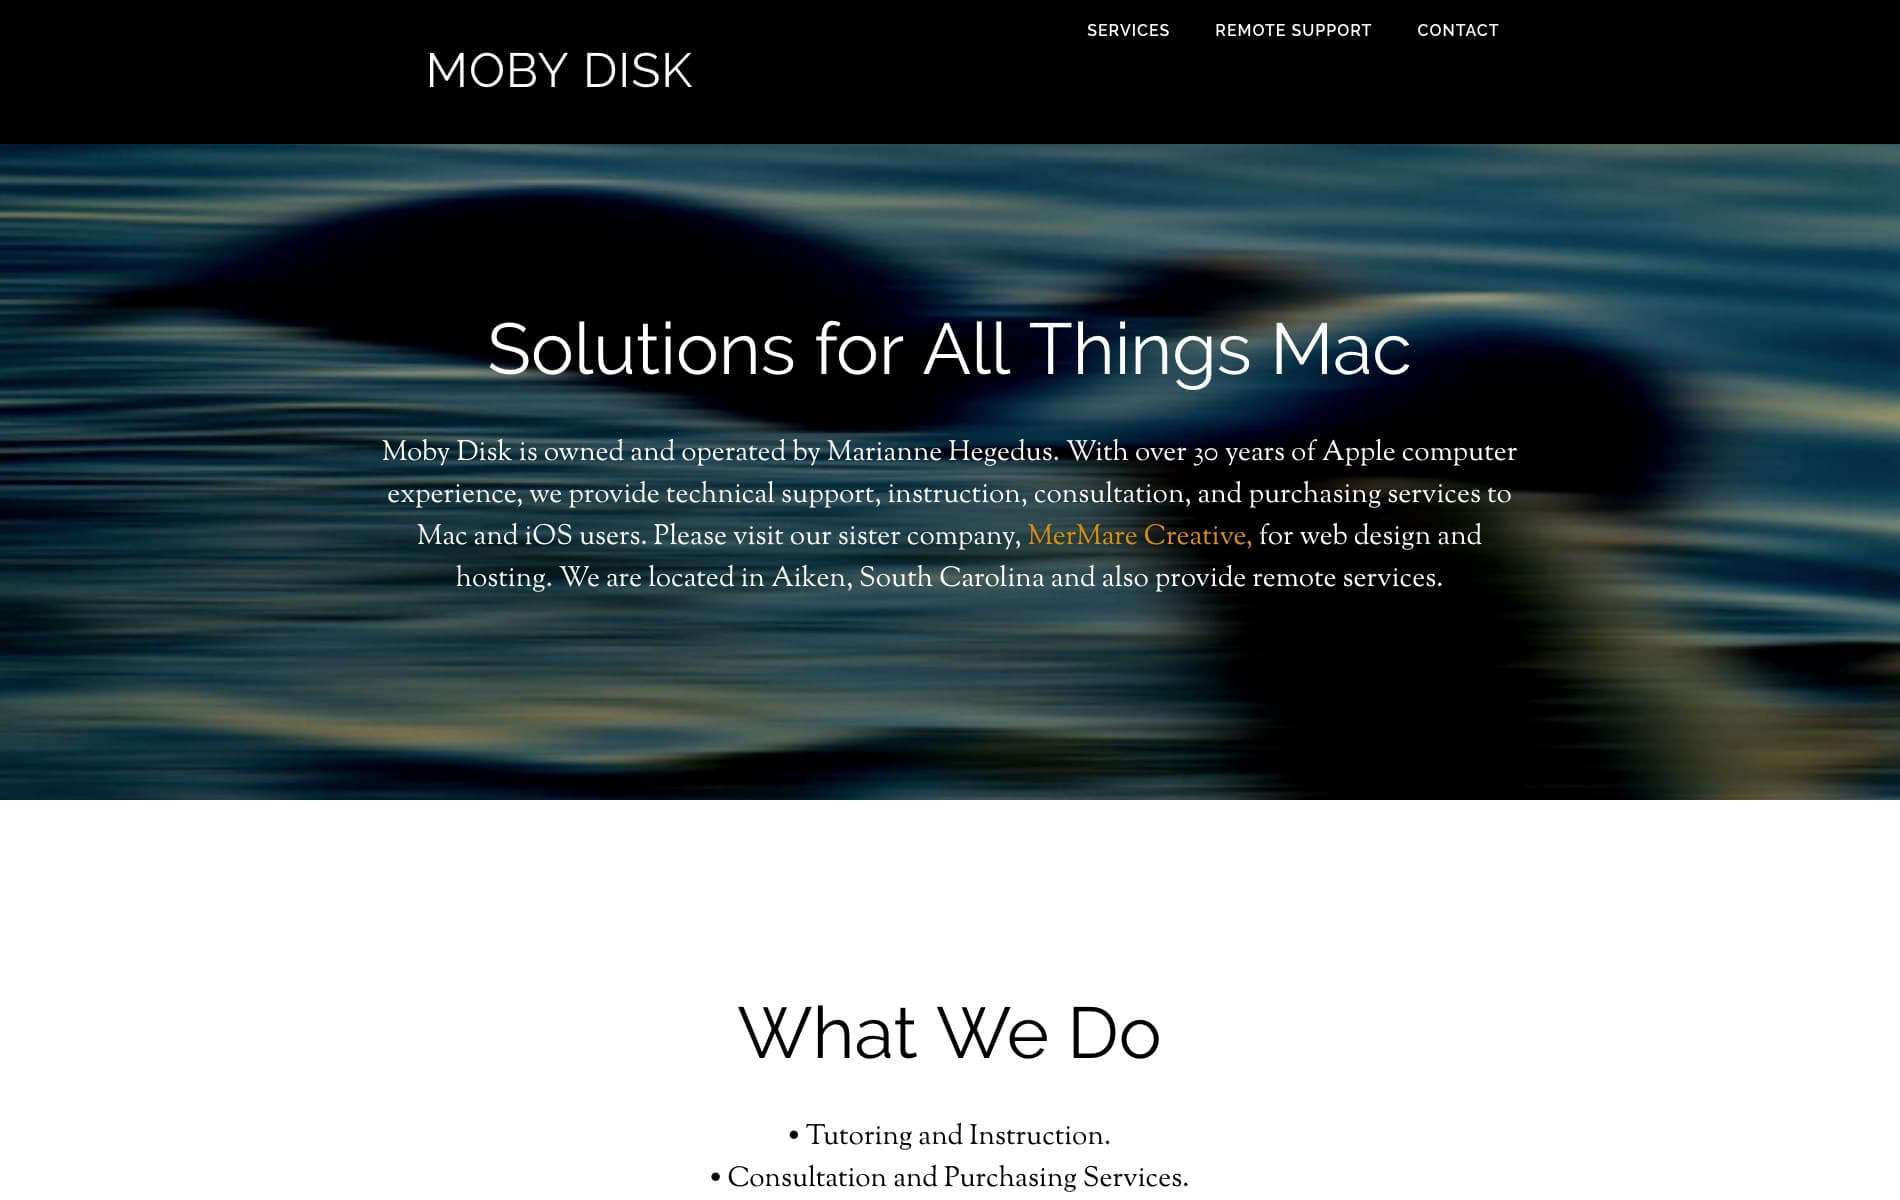 screenshot of website on iMac - Moby Disk